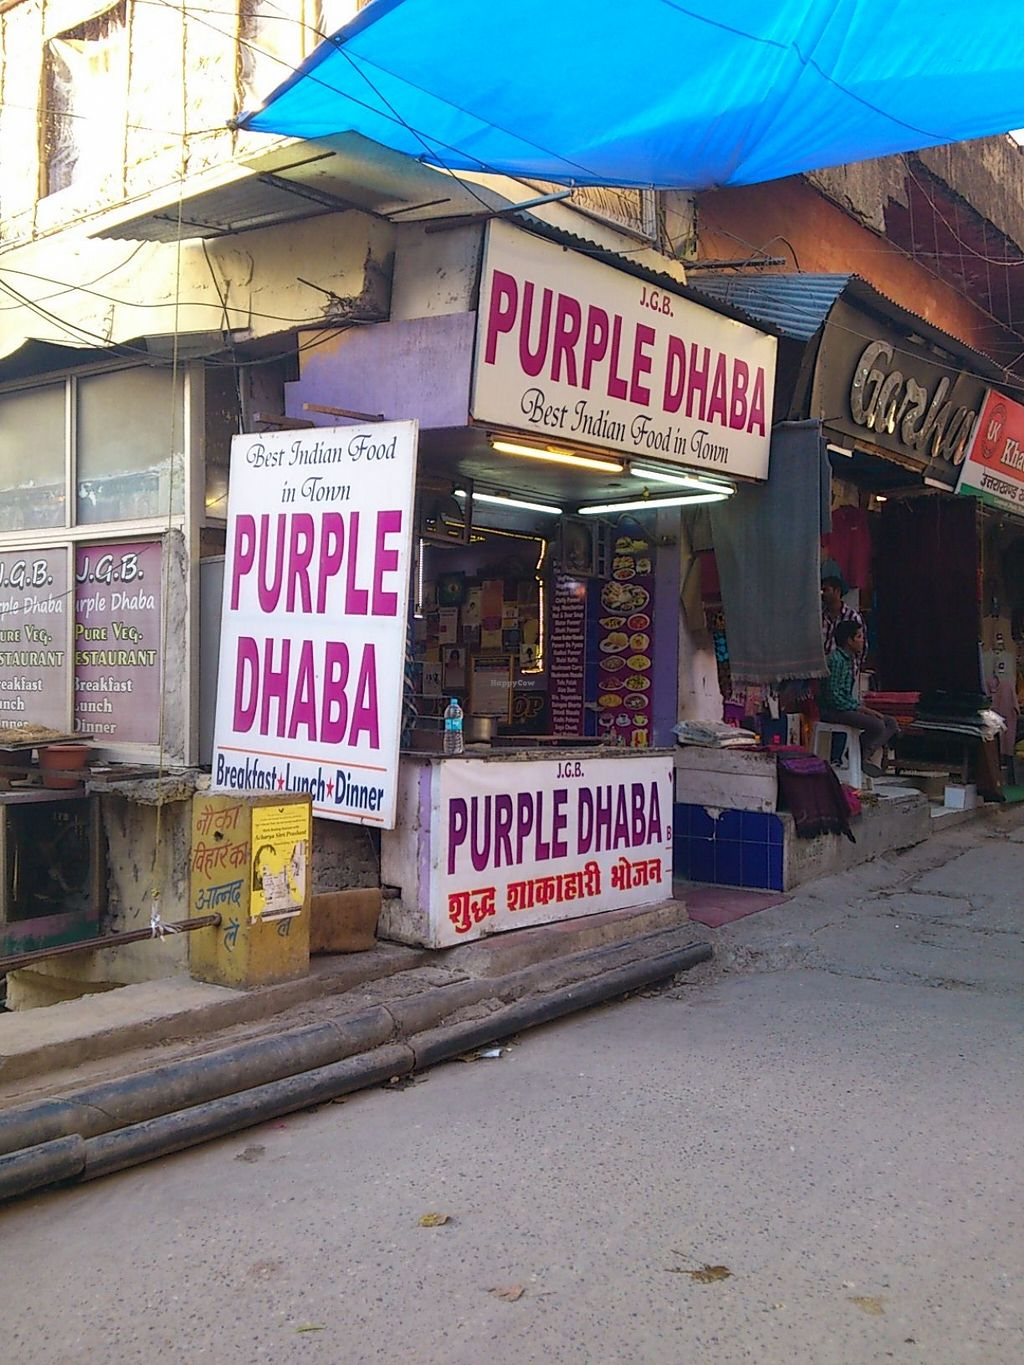 """Photo of JGB Purple Dhaba  by <a href=""""/members/profile/vivasteve"""">vivasteve</a> <br/>Moogle street view of Purple Dhaba  <br/> March 23, 2016  - <a href='/contact/abuse/image/71207/141101'>Report</a>"""